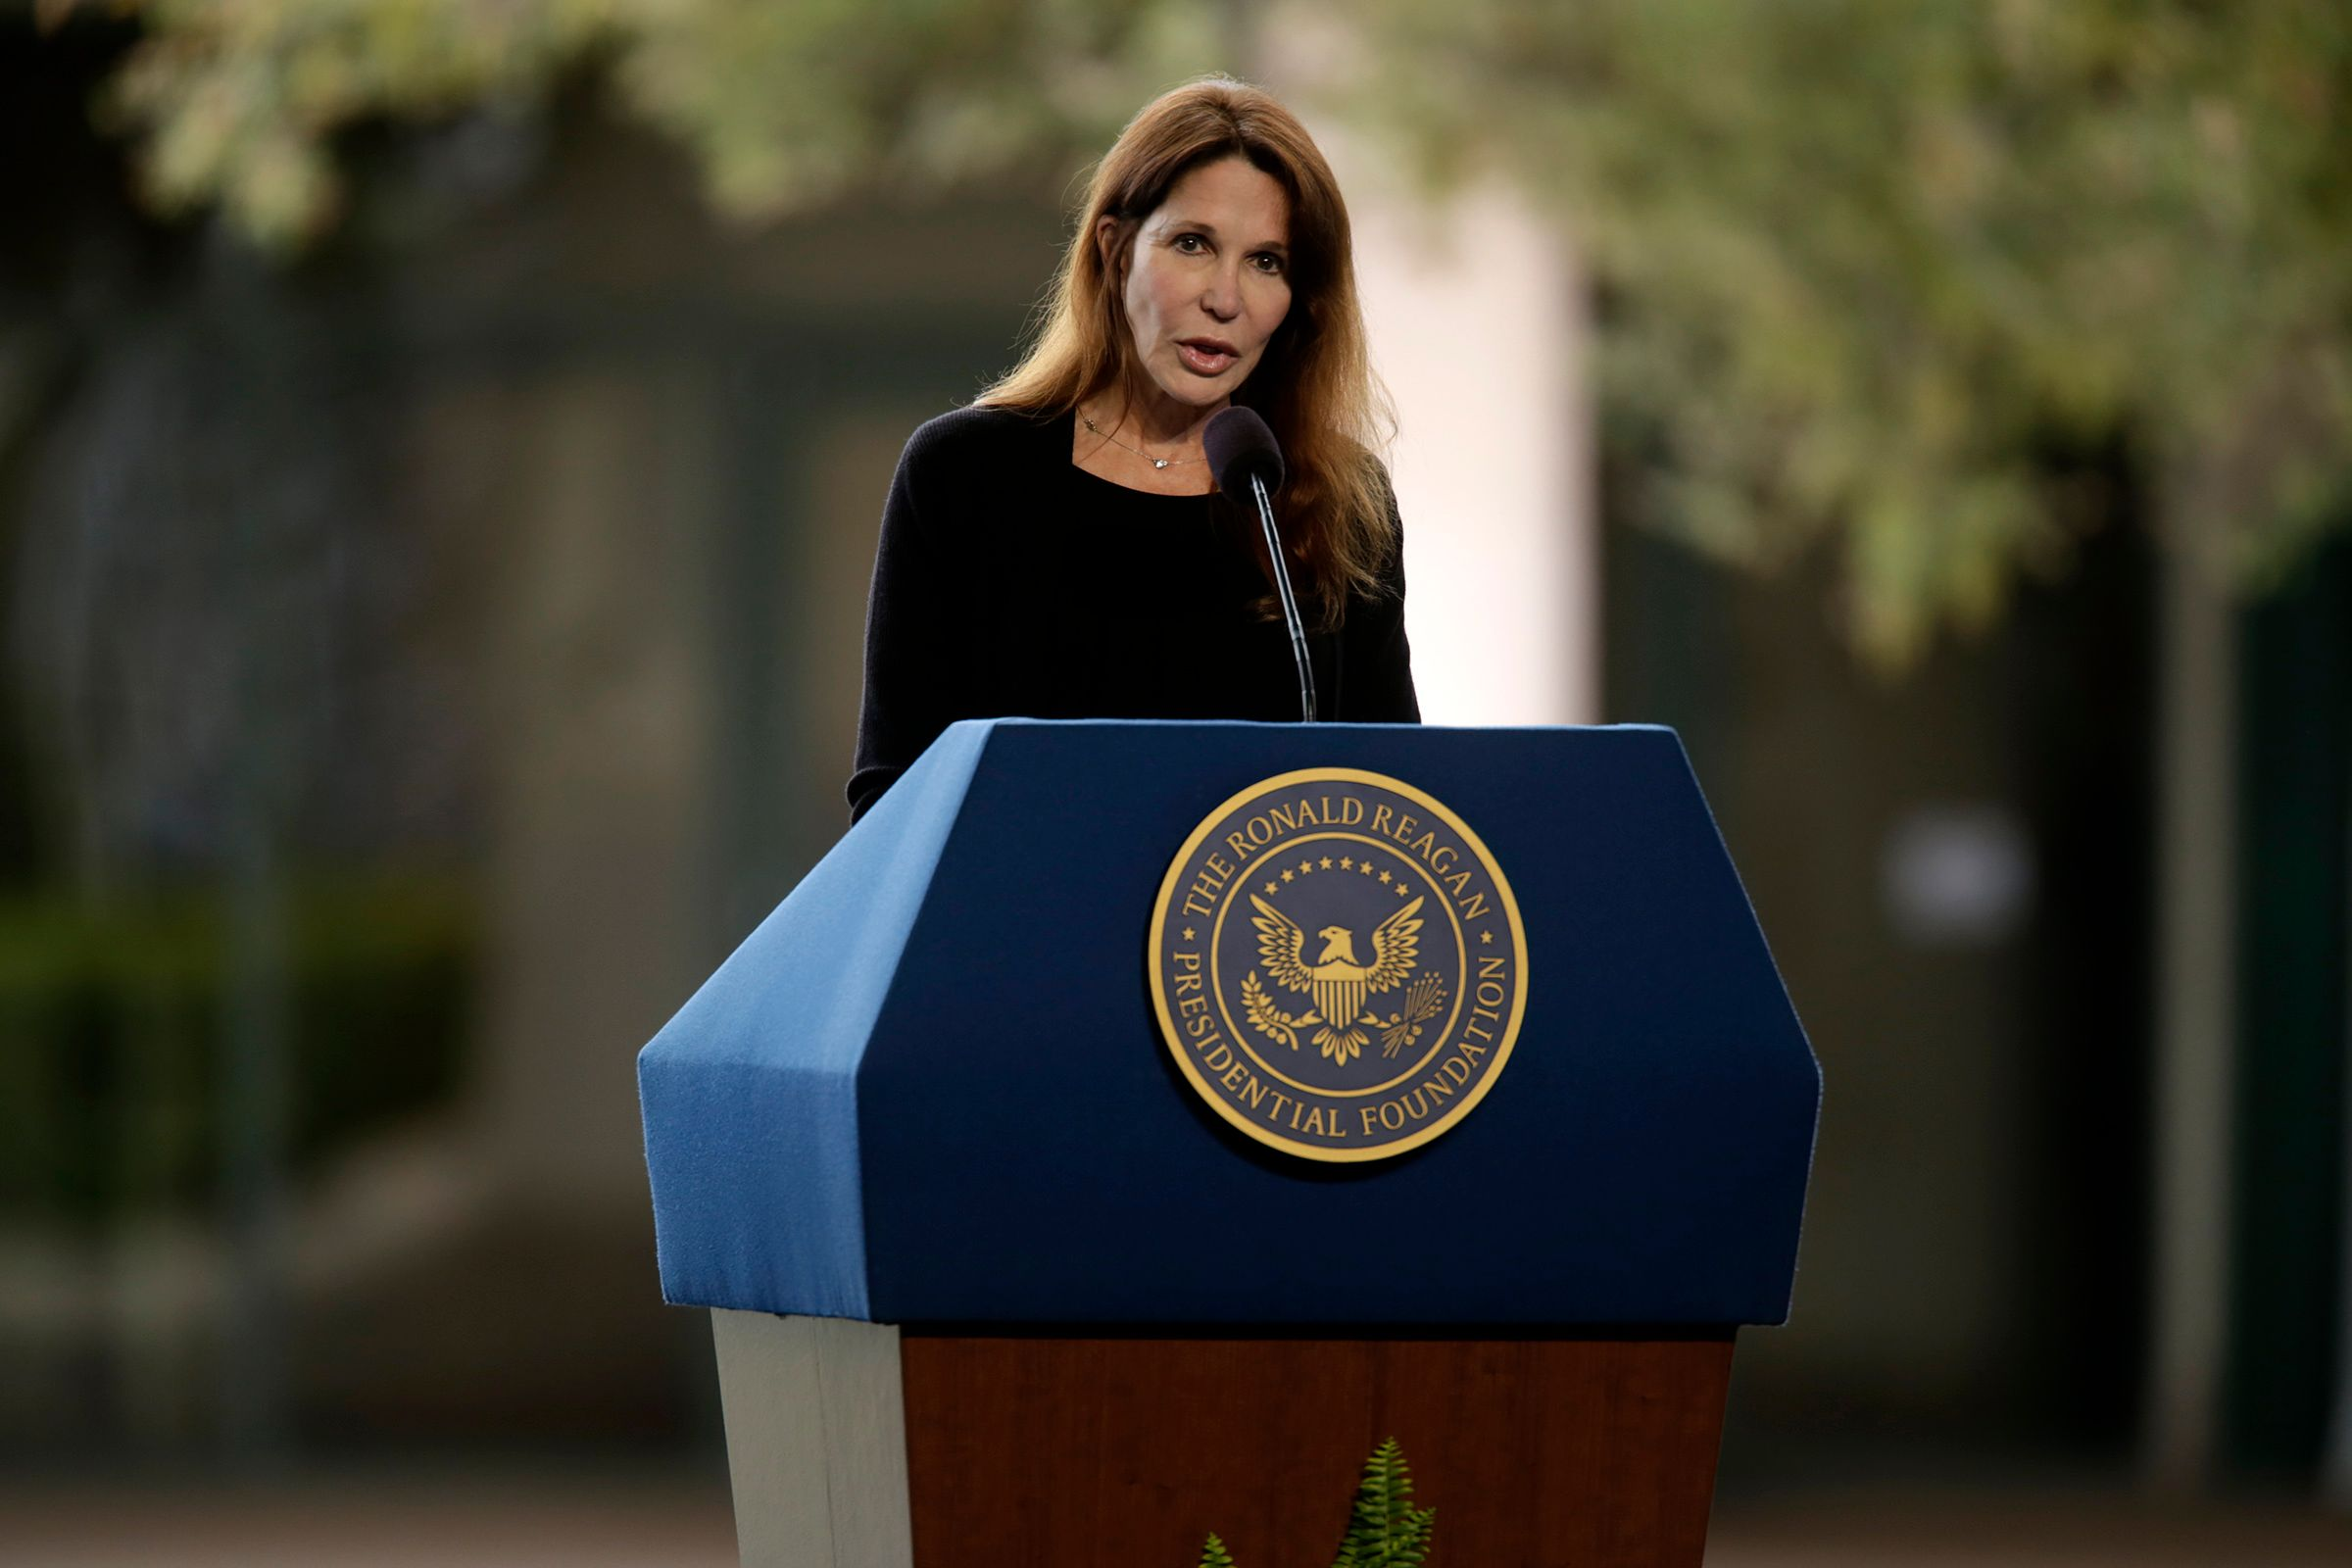 Patti Davis spoke at the funeral of her mother and former First Lady Nancy Reagan at the Ronald Reagan Presidential Library March 11, 2016 in Simi Valley, California | Photo: Getty Images